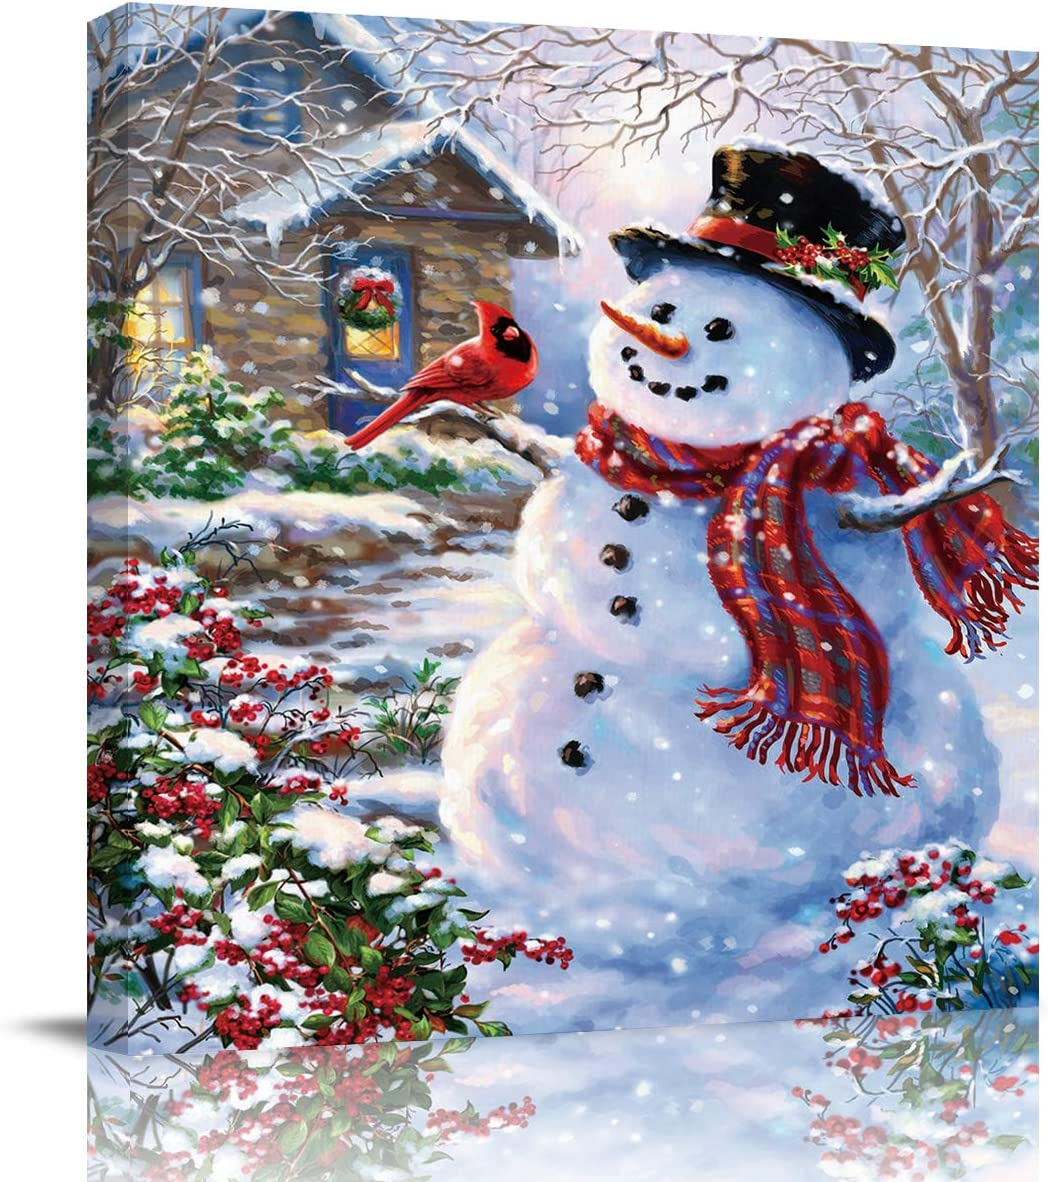 Square Canvas Wall Prints Art for Living Room Bedroom 20x20 inch - Christmas Winter Snow Scenery Cute Snowman Red Bird Poster Artwork Picture Painting Ready to Hang for Home Bathroom Office Decor